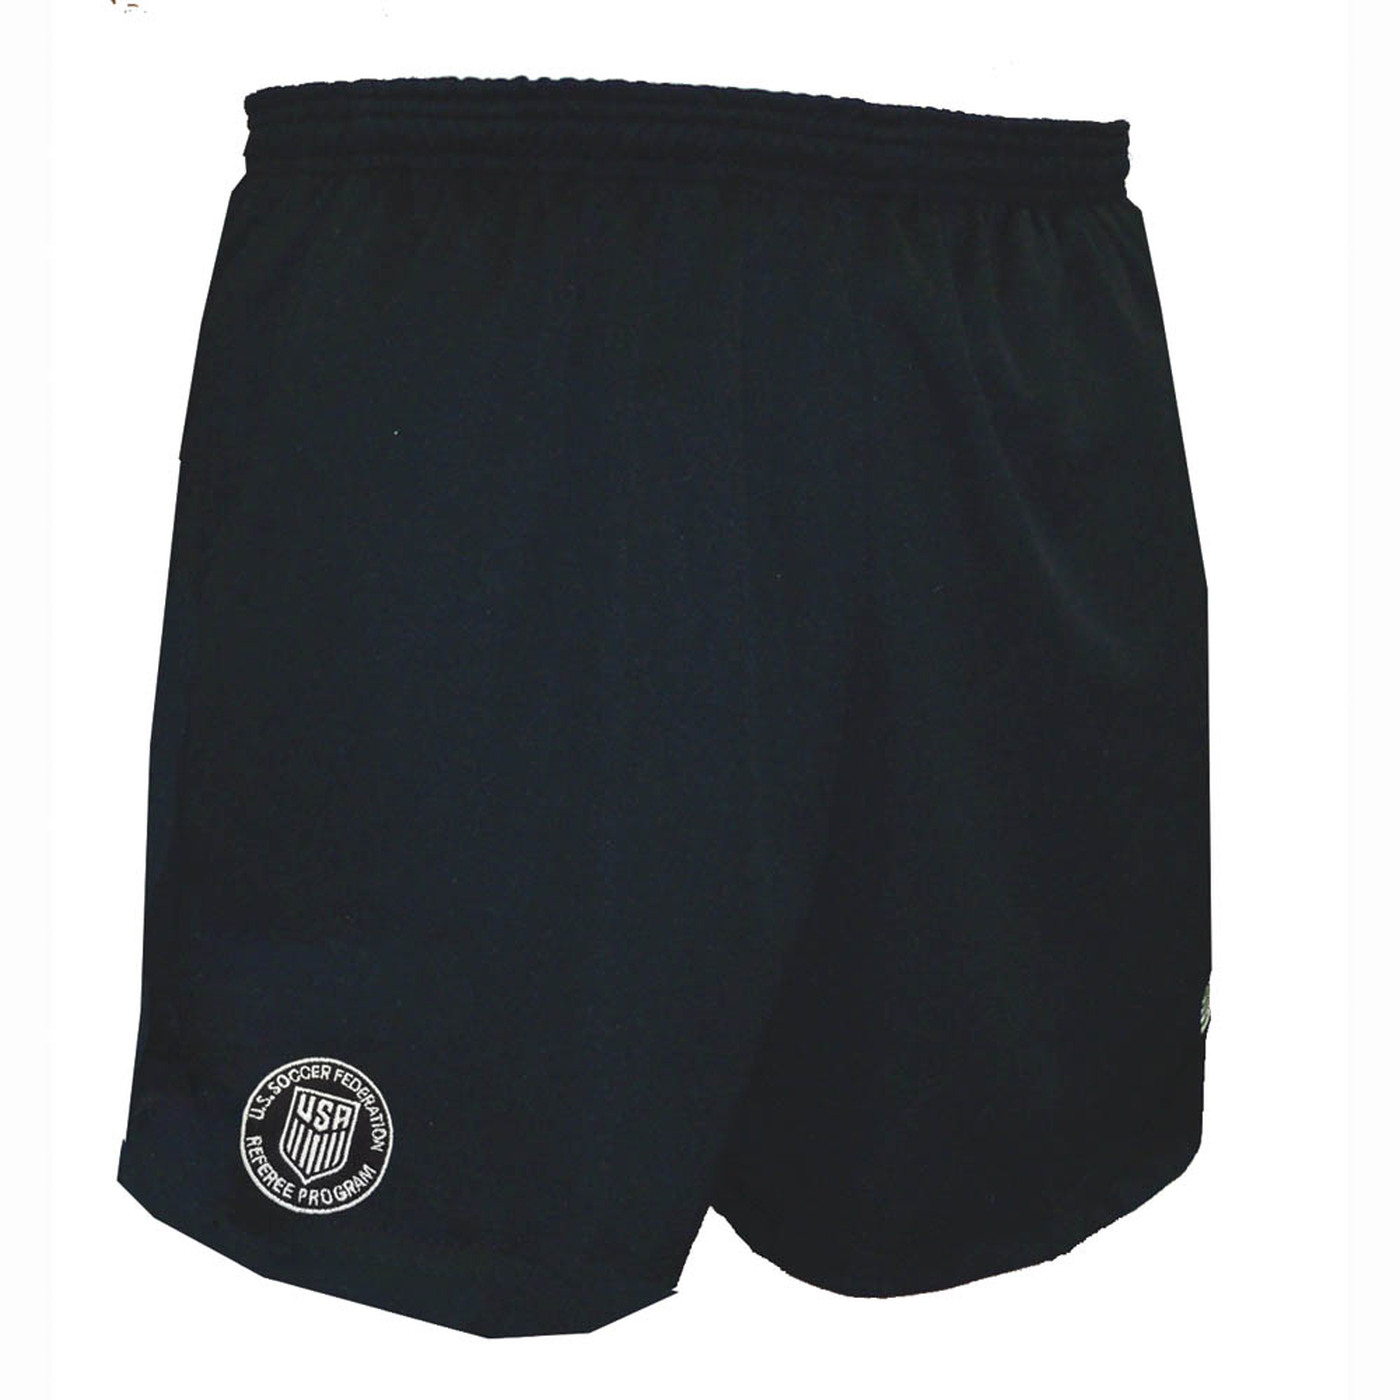 1063CL The ONLY Official U.S. Soccer Coolwick® Short